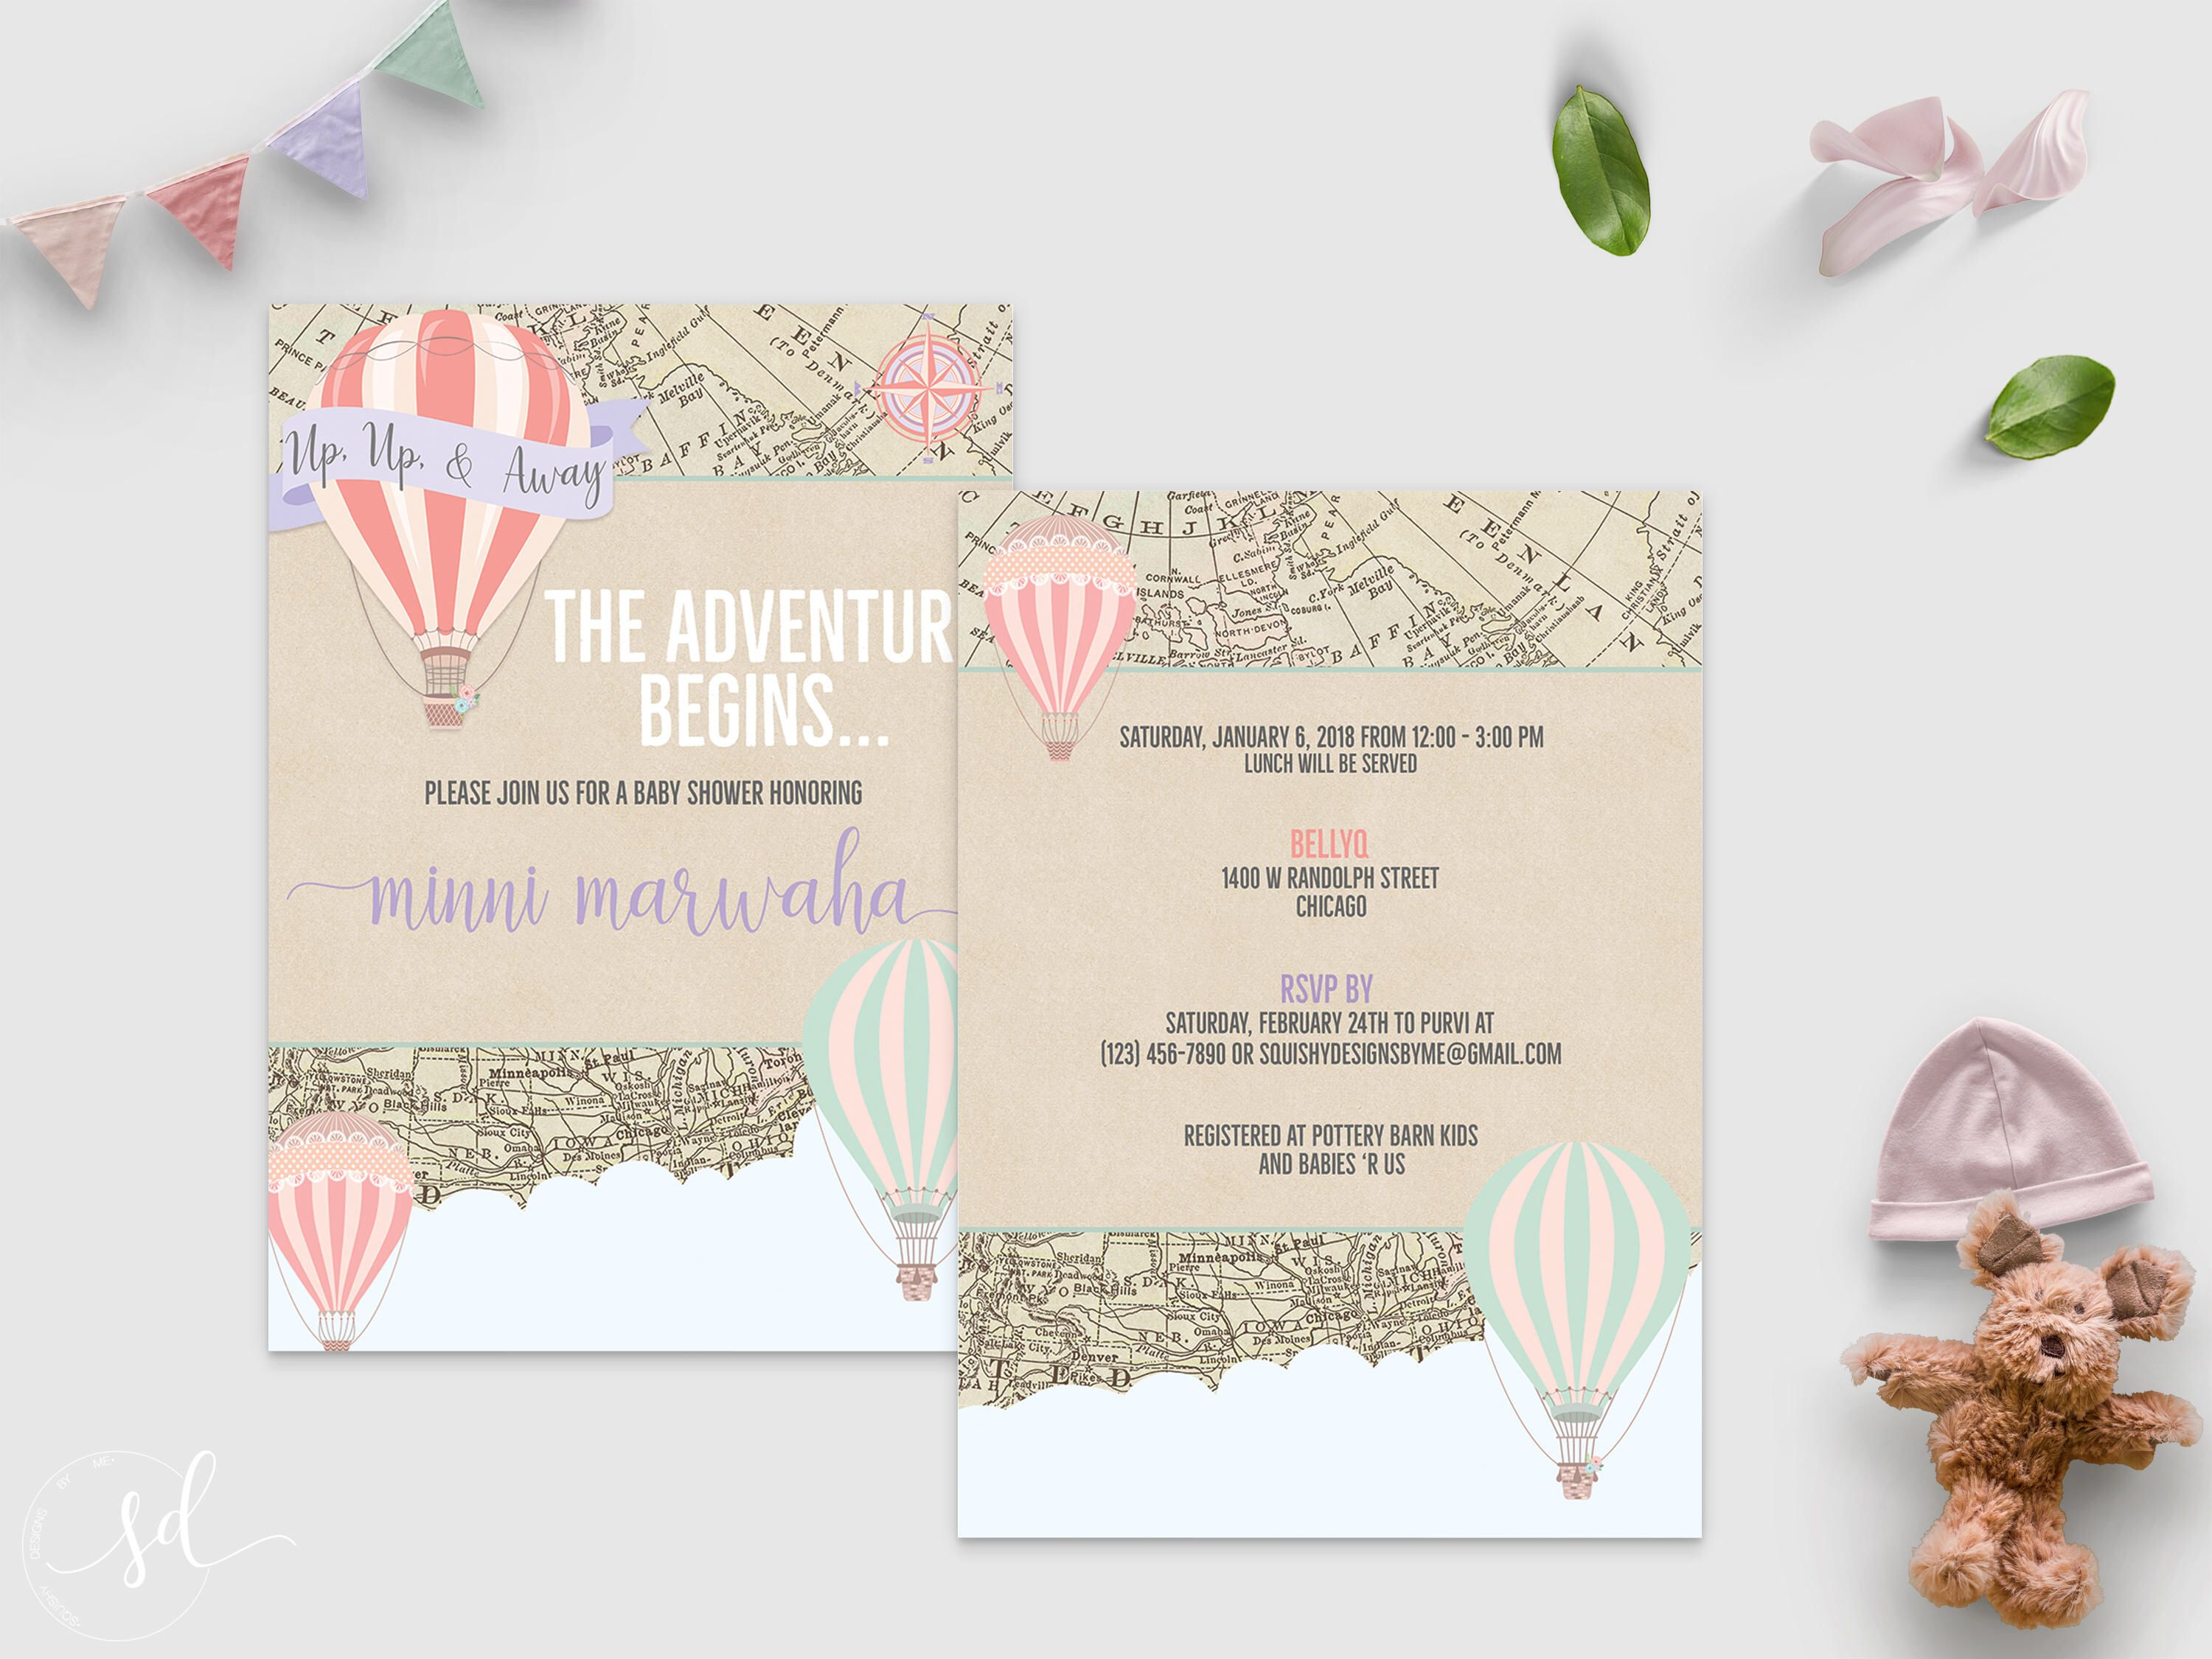 Hot Air Balloon Baby Shower Invitation Vintage World Travel Theme